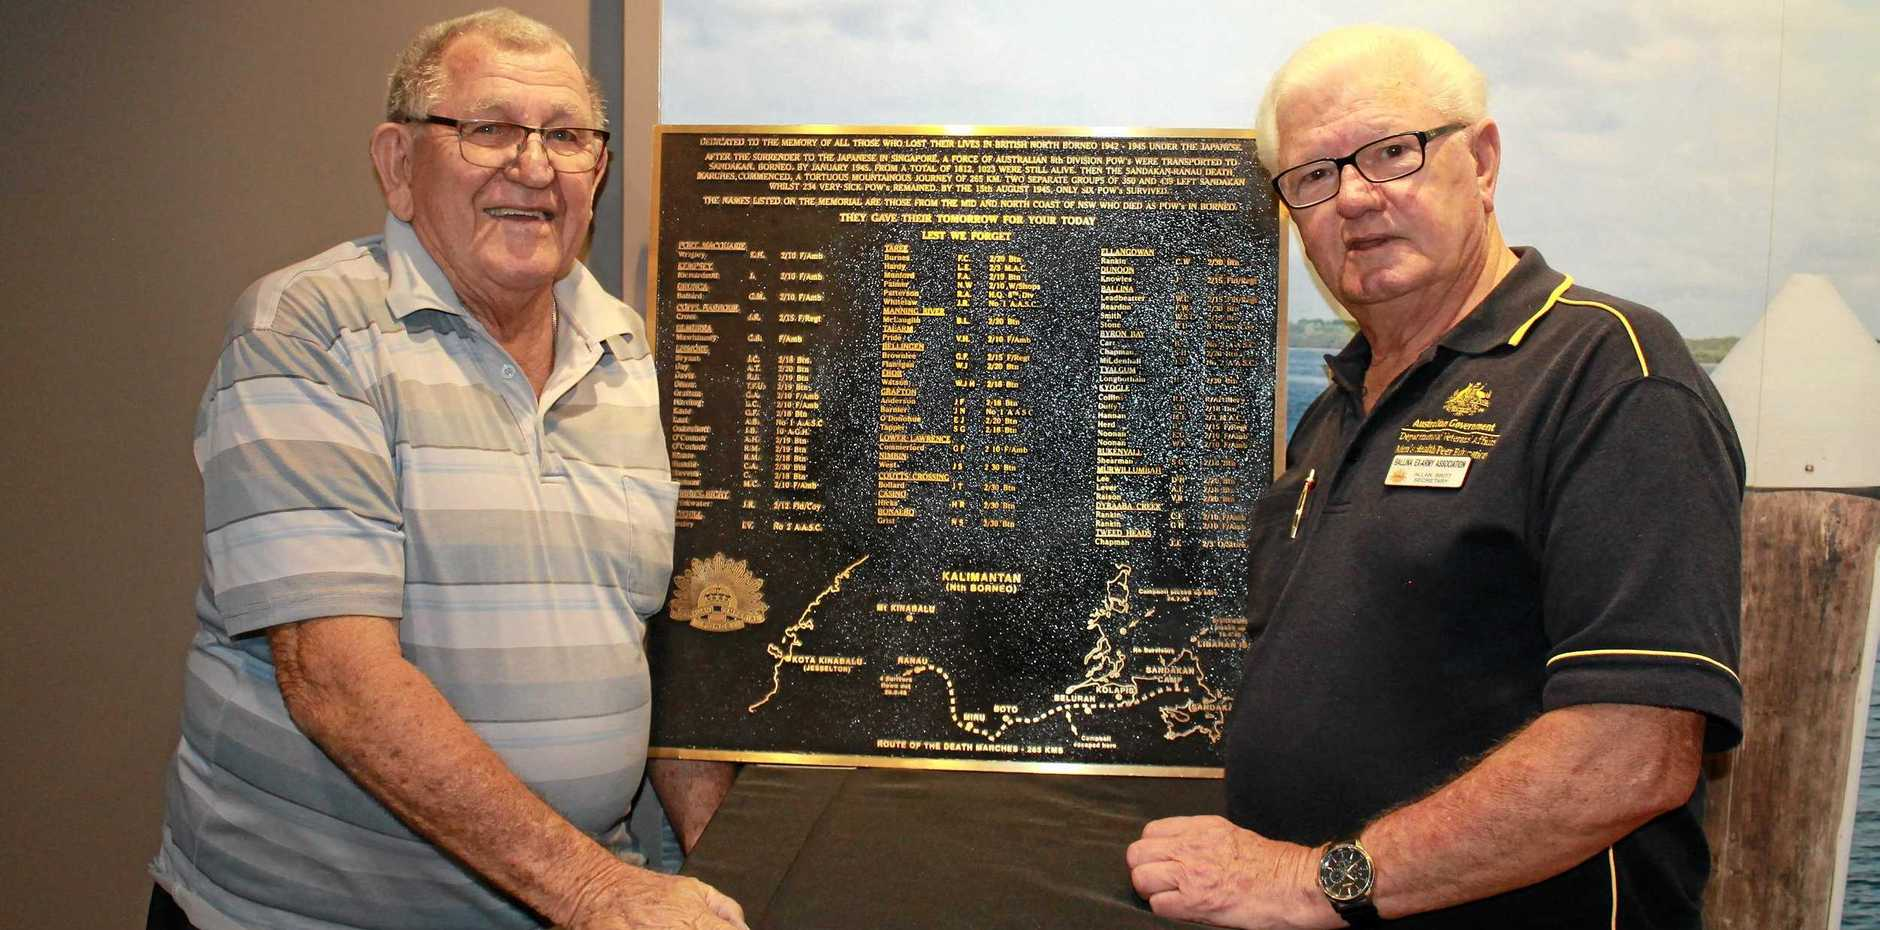 REMEMBRANCE: Vernon Jarrett-Smith with Assistant Curator Ballina RSL Sub-Branch Museum, Allan Britt, with the plaque showing all the names of North Coast POWs who died in the Sandakan march in 1945.